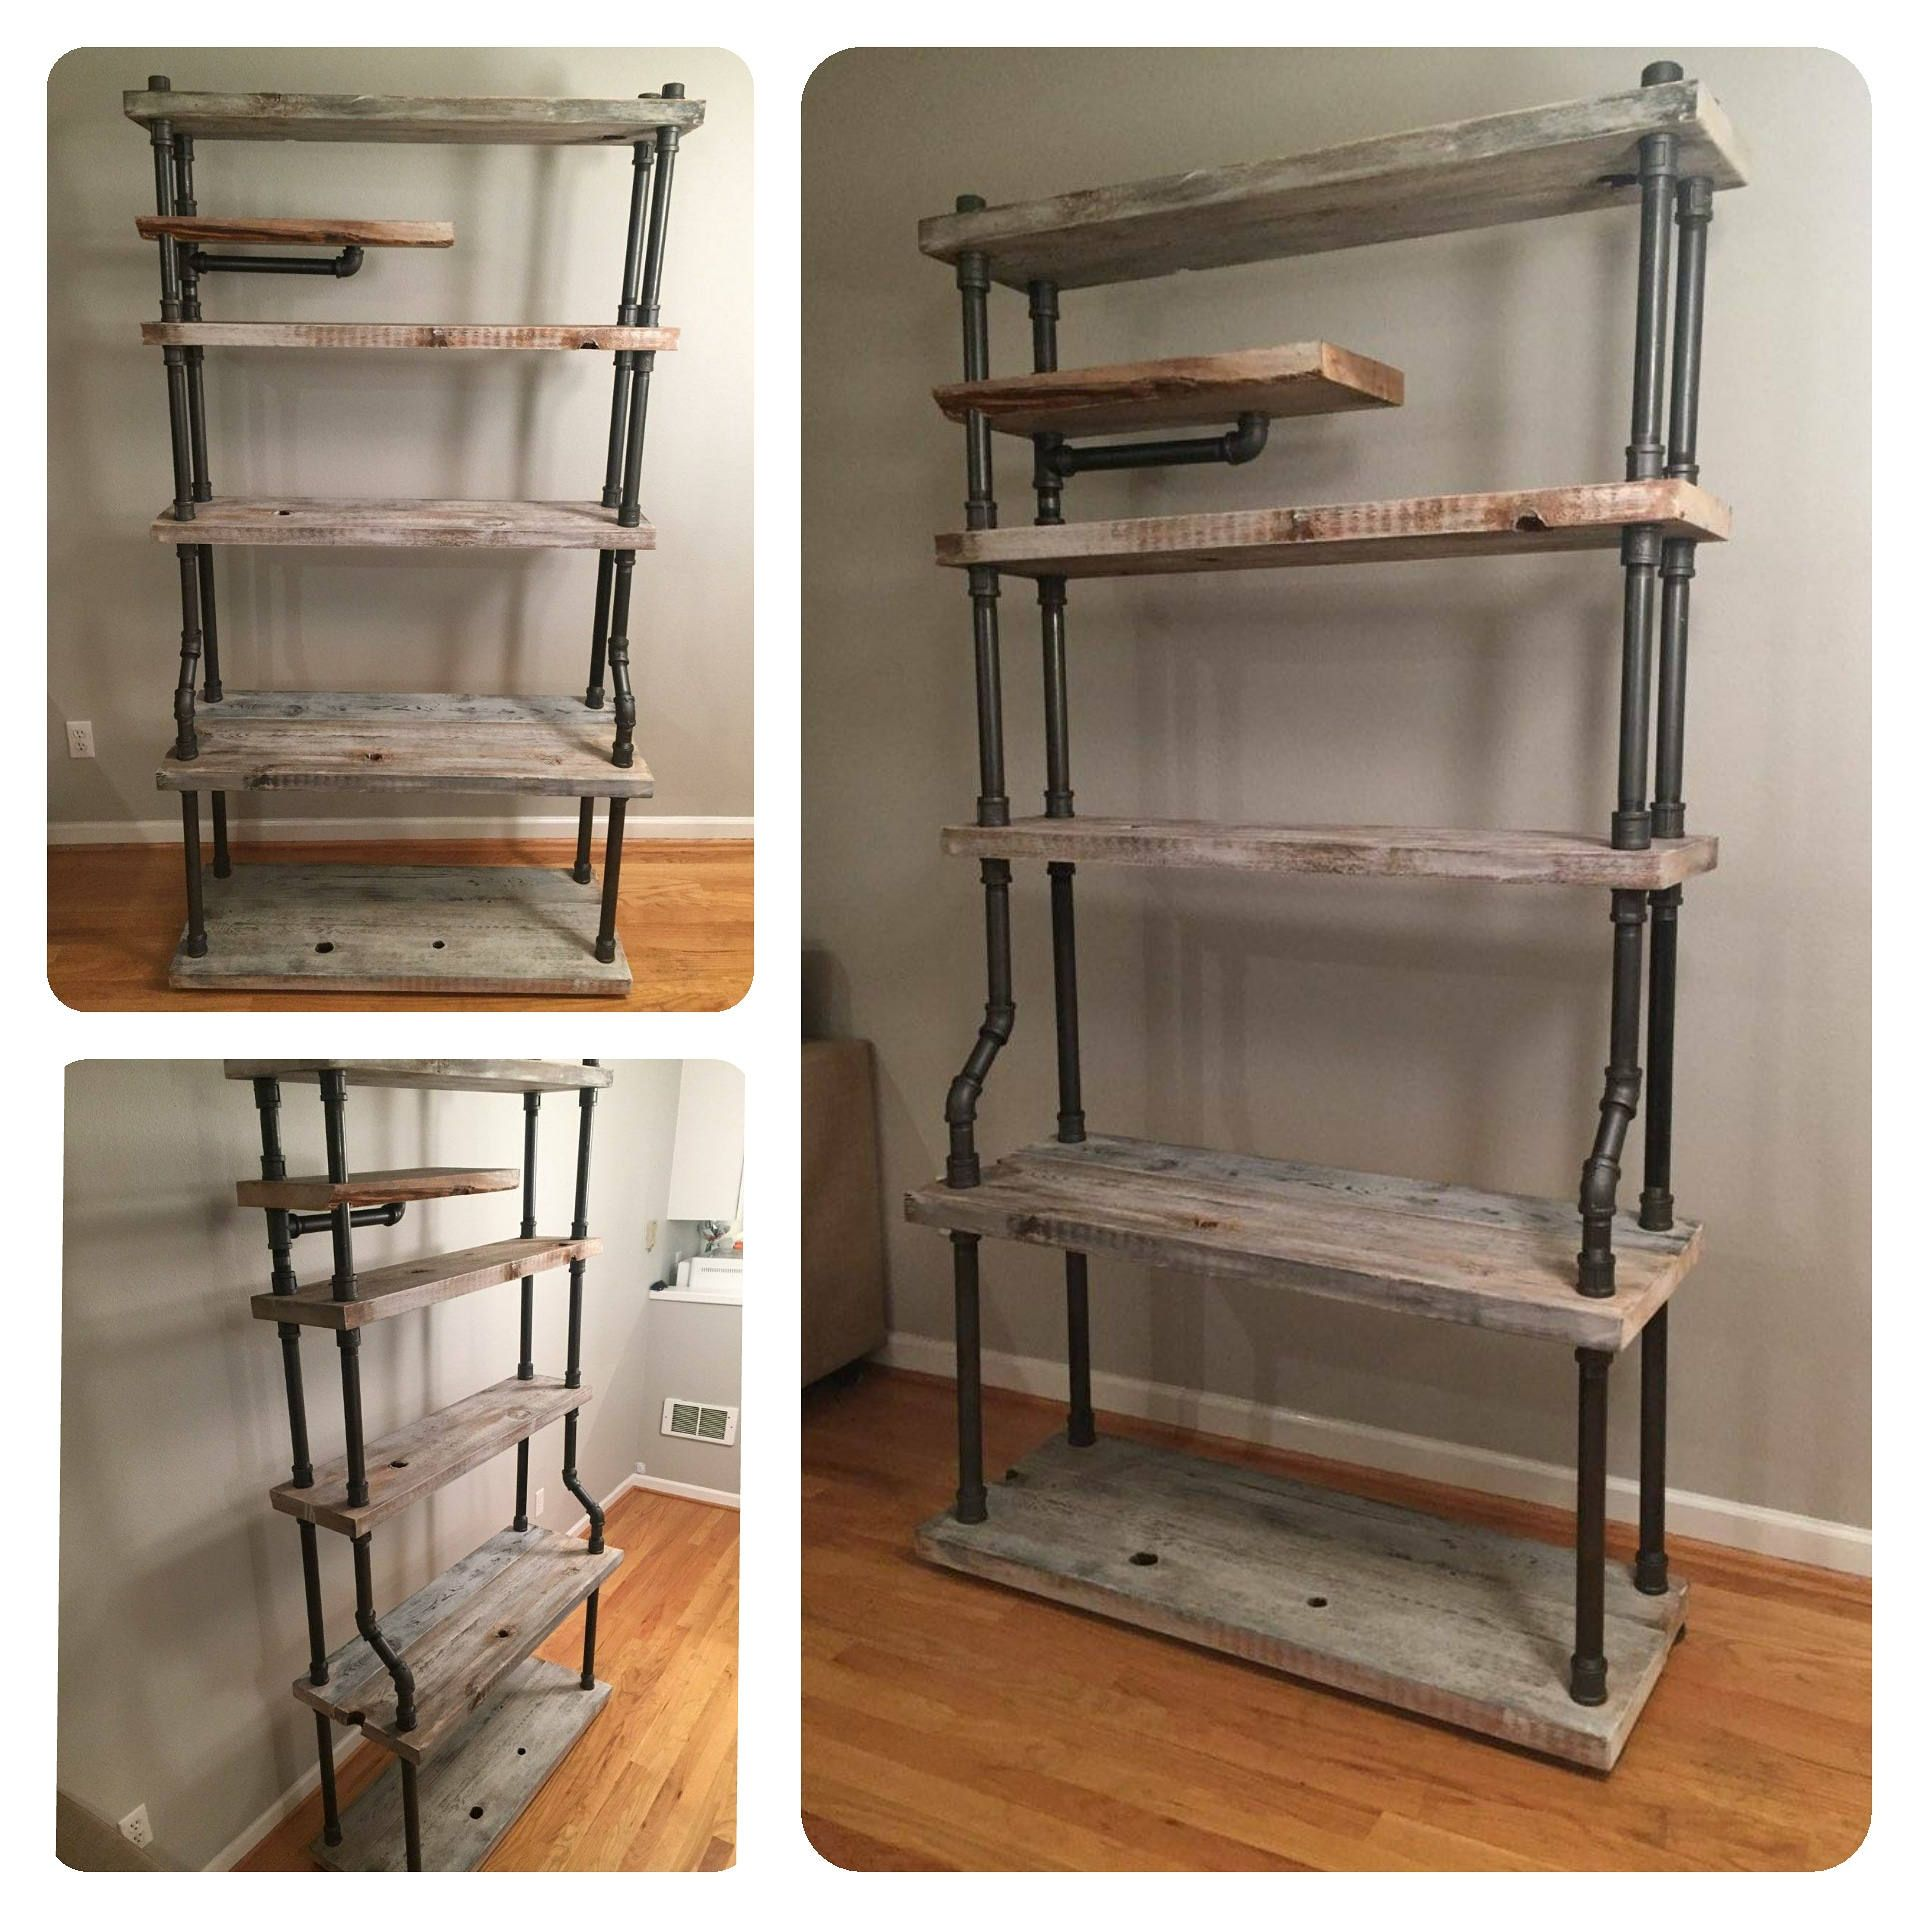 Huge free standing pipe shelves 6 1 2 ft tall industrial style shelving